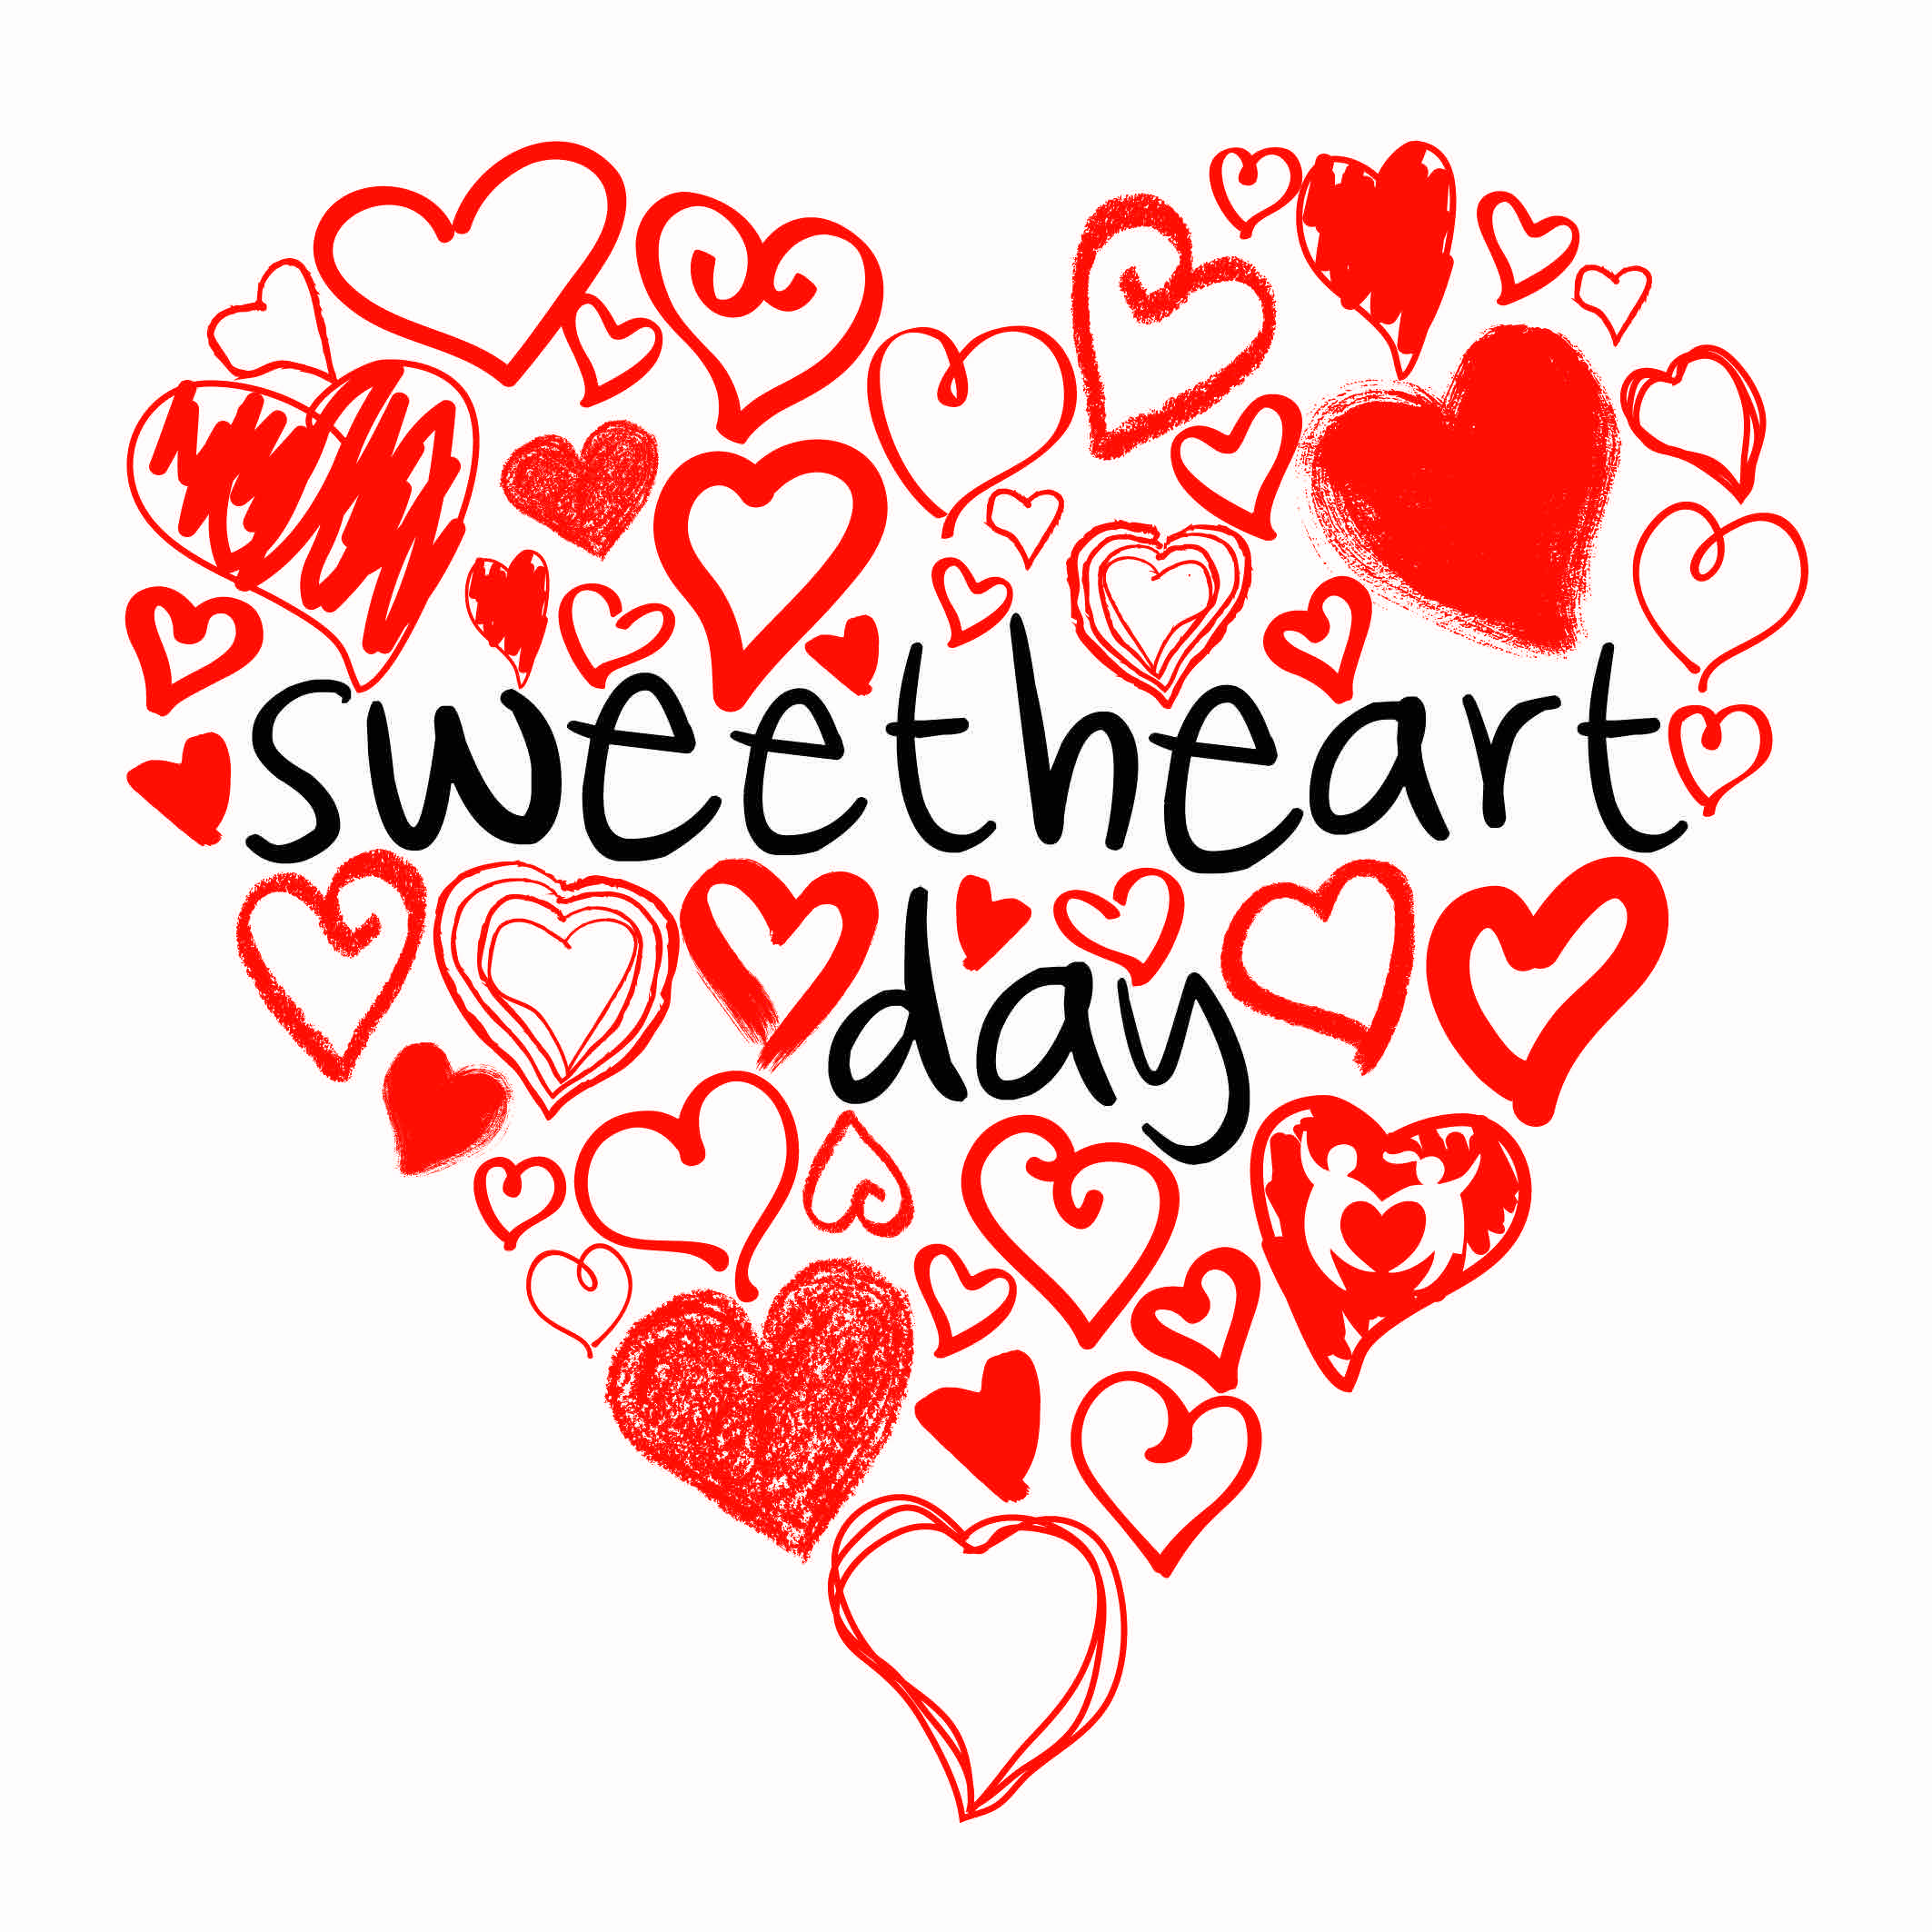 Sweethearts Day Heart Kids Australia Baby Hints And Tips